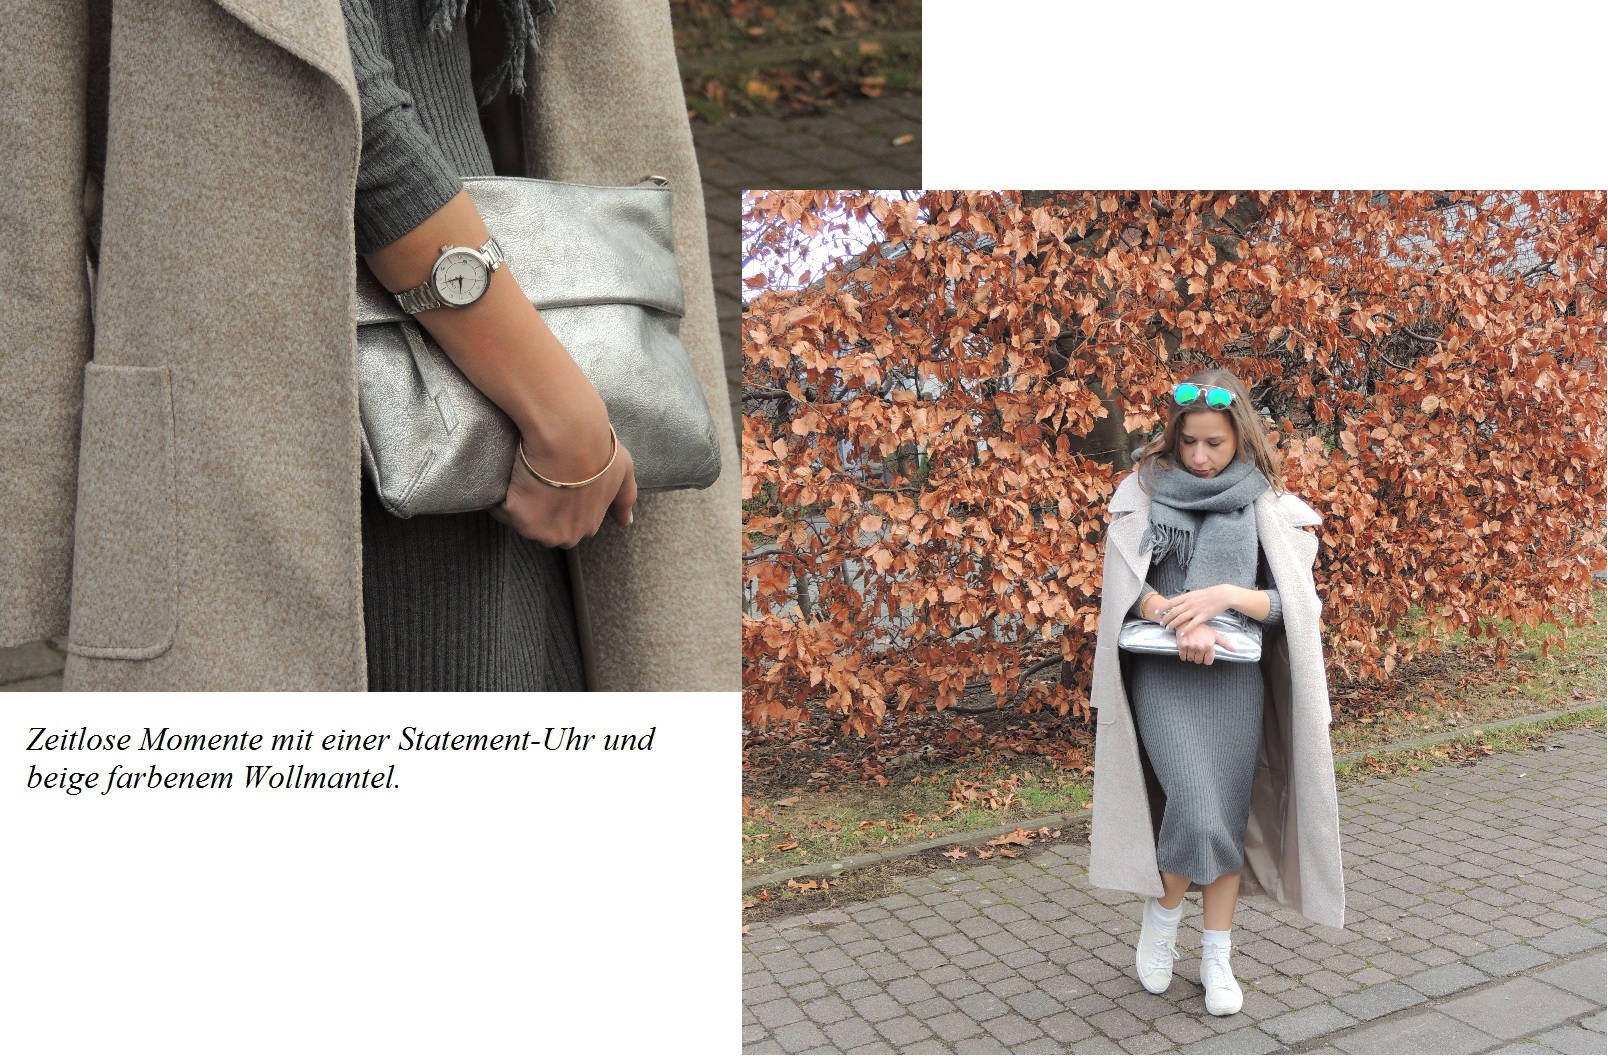 the-weekender-christmas-time-is-here-giveaway-liebe-was-ist-lifestyle-sonntags-gedanken-fashionblogger-petite-is-perfekt-fashion-wollmantel